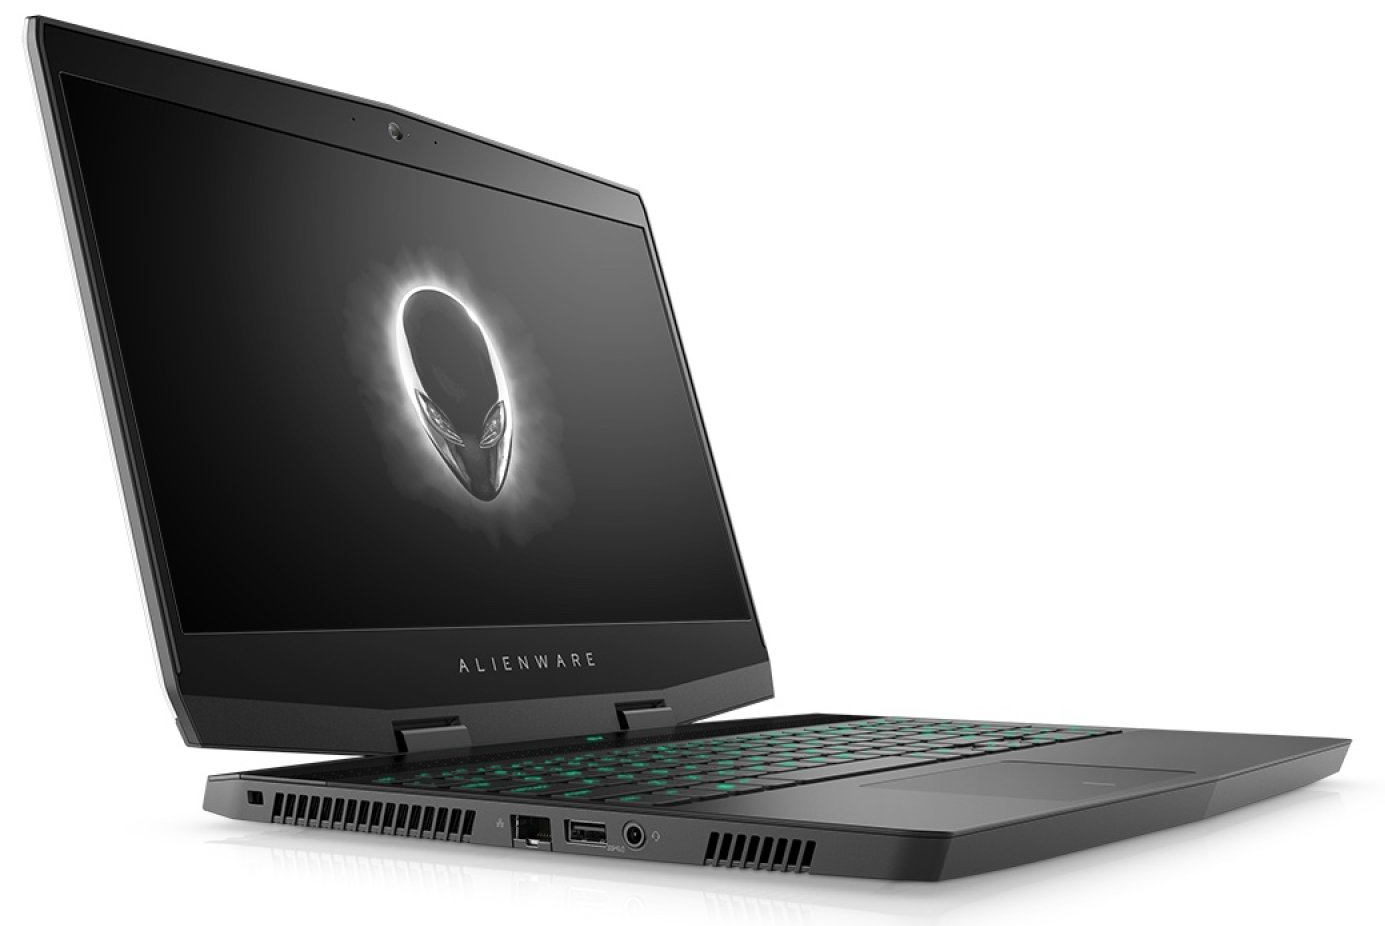 Dell Alienware M15 - slim and lightweight gaming notebook with lots of performance